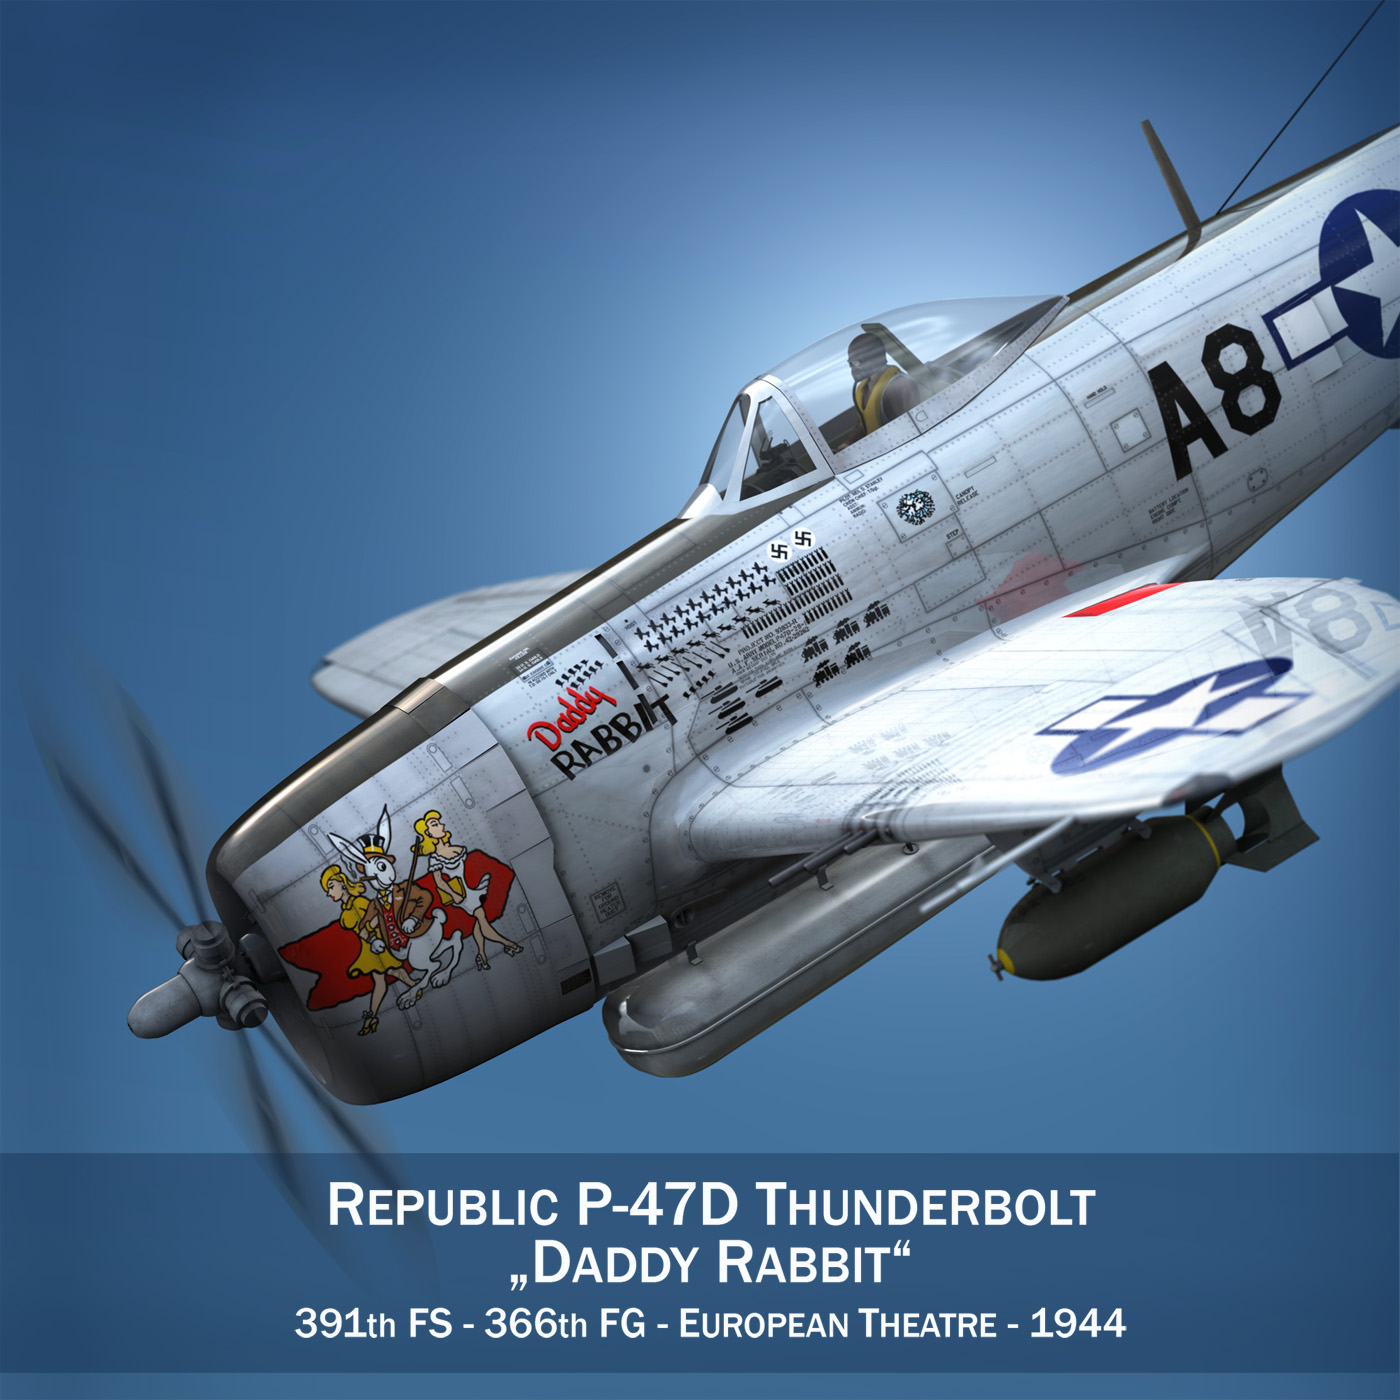 republic p-47 thunderbolt – daddy rabbit 3d model fbx c4d lwo obj 272688